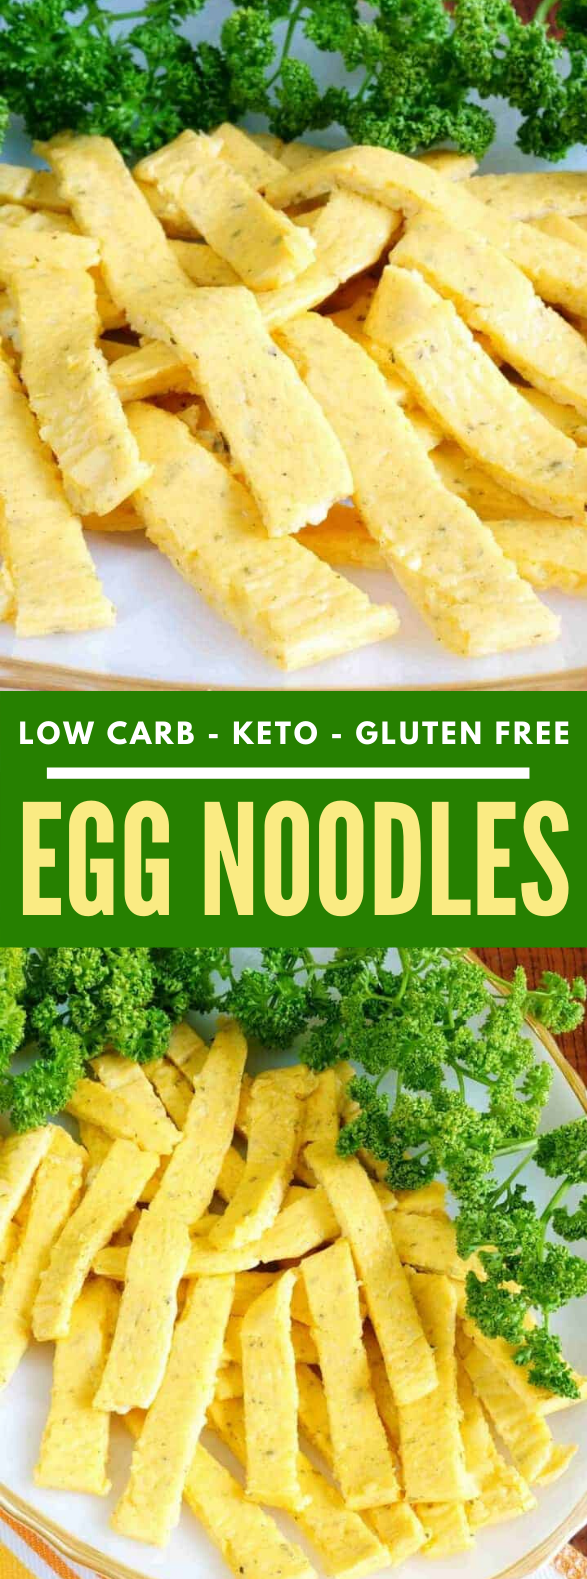 Keto Noodles – Low Carb Egg Noodles #diet #healthy